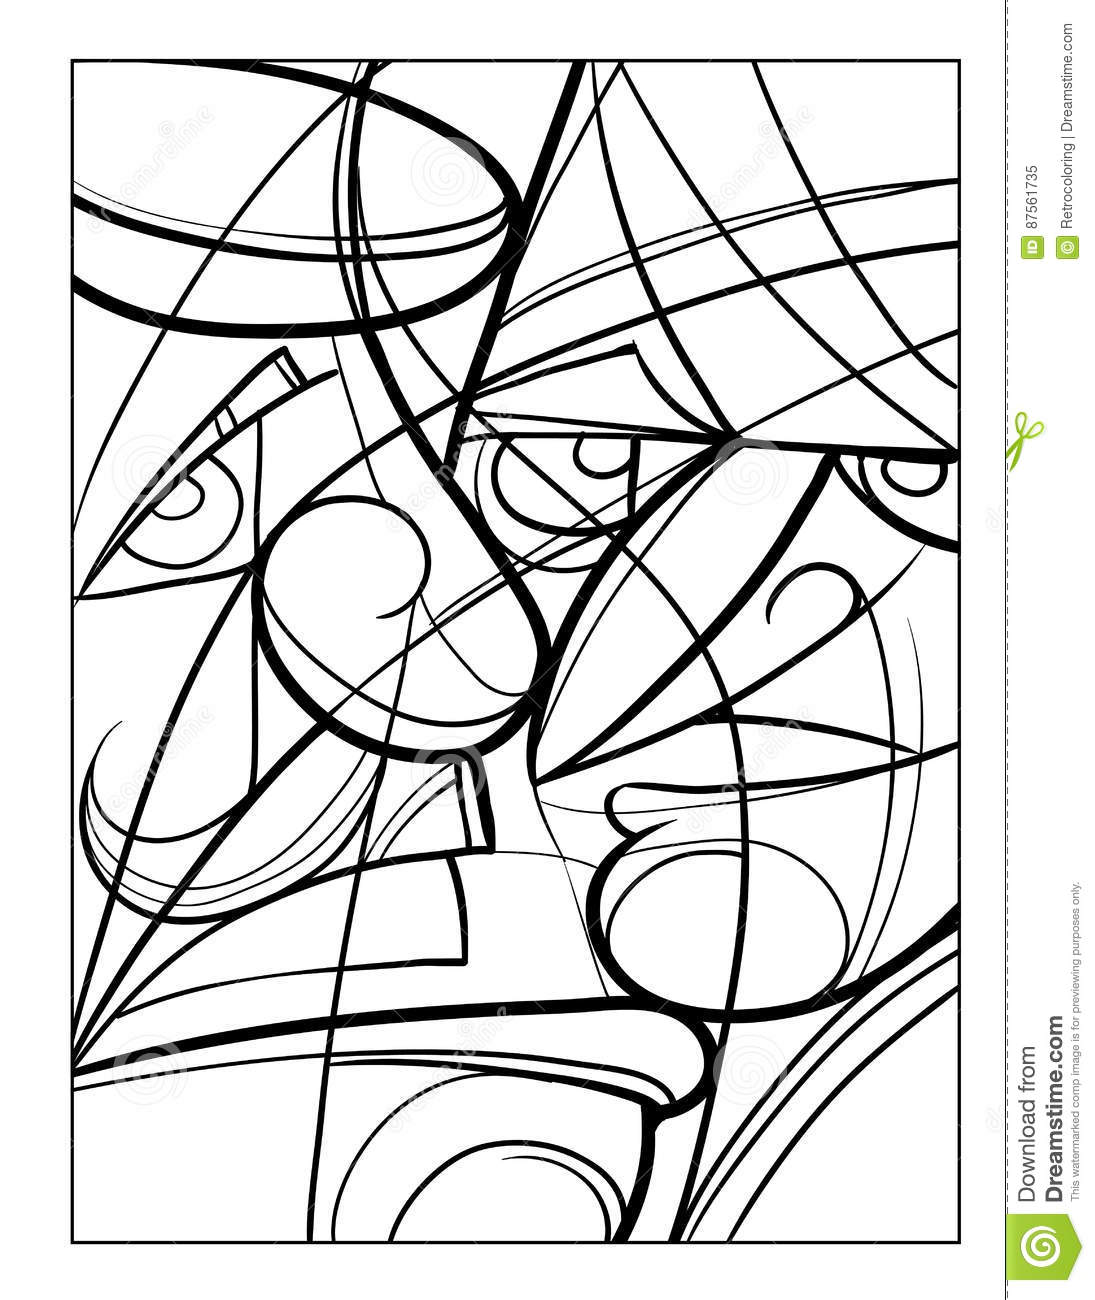 Cubist Faces Fun Coloring Page Stock Vector - Illustration of emoji ...